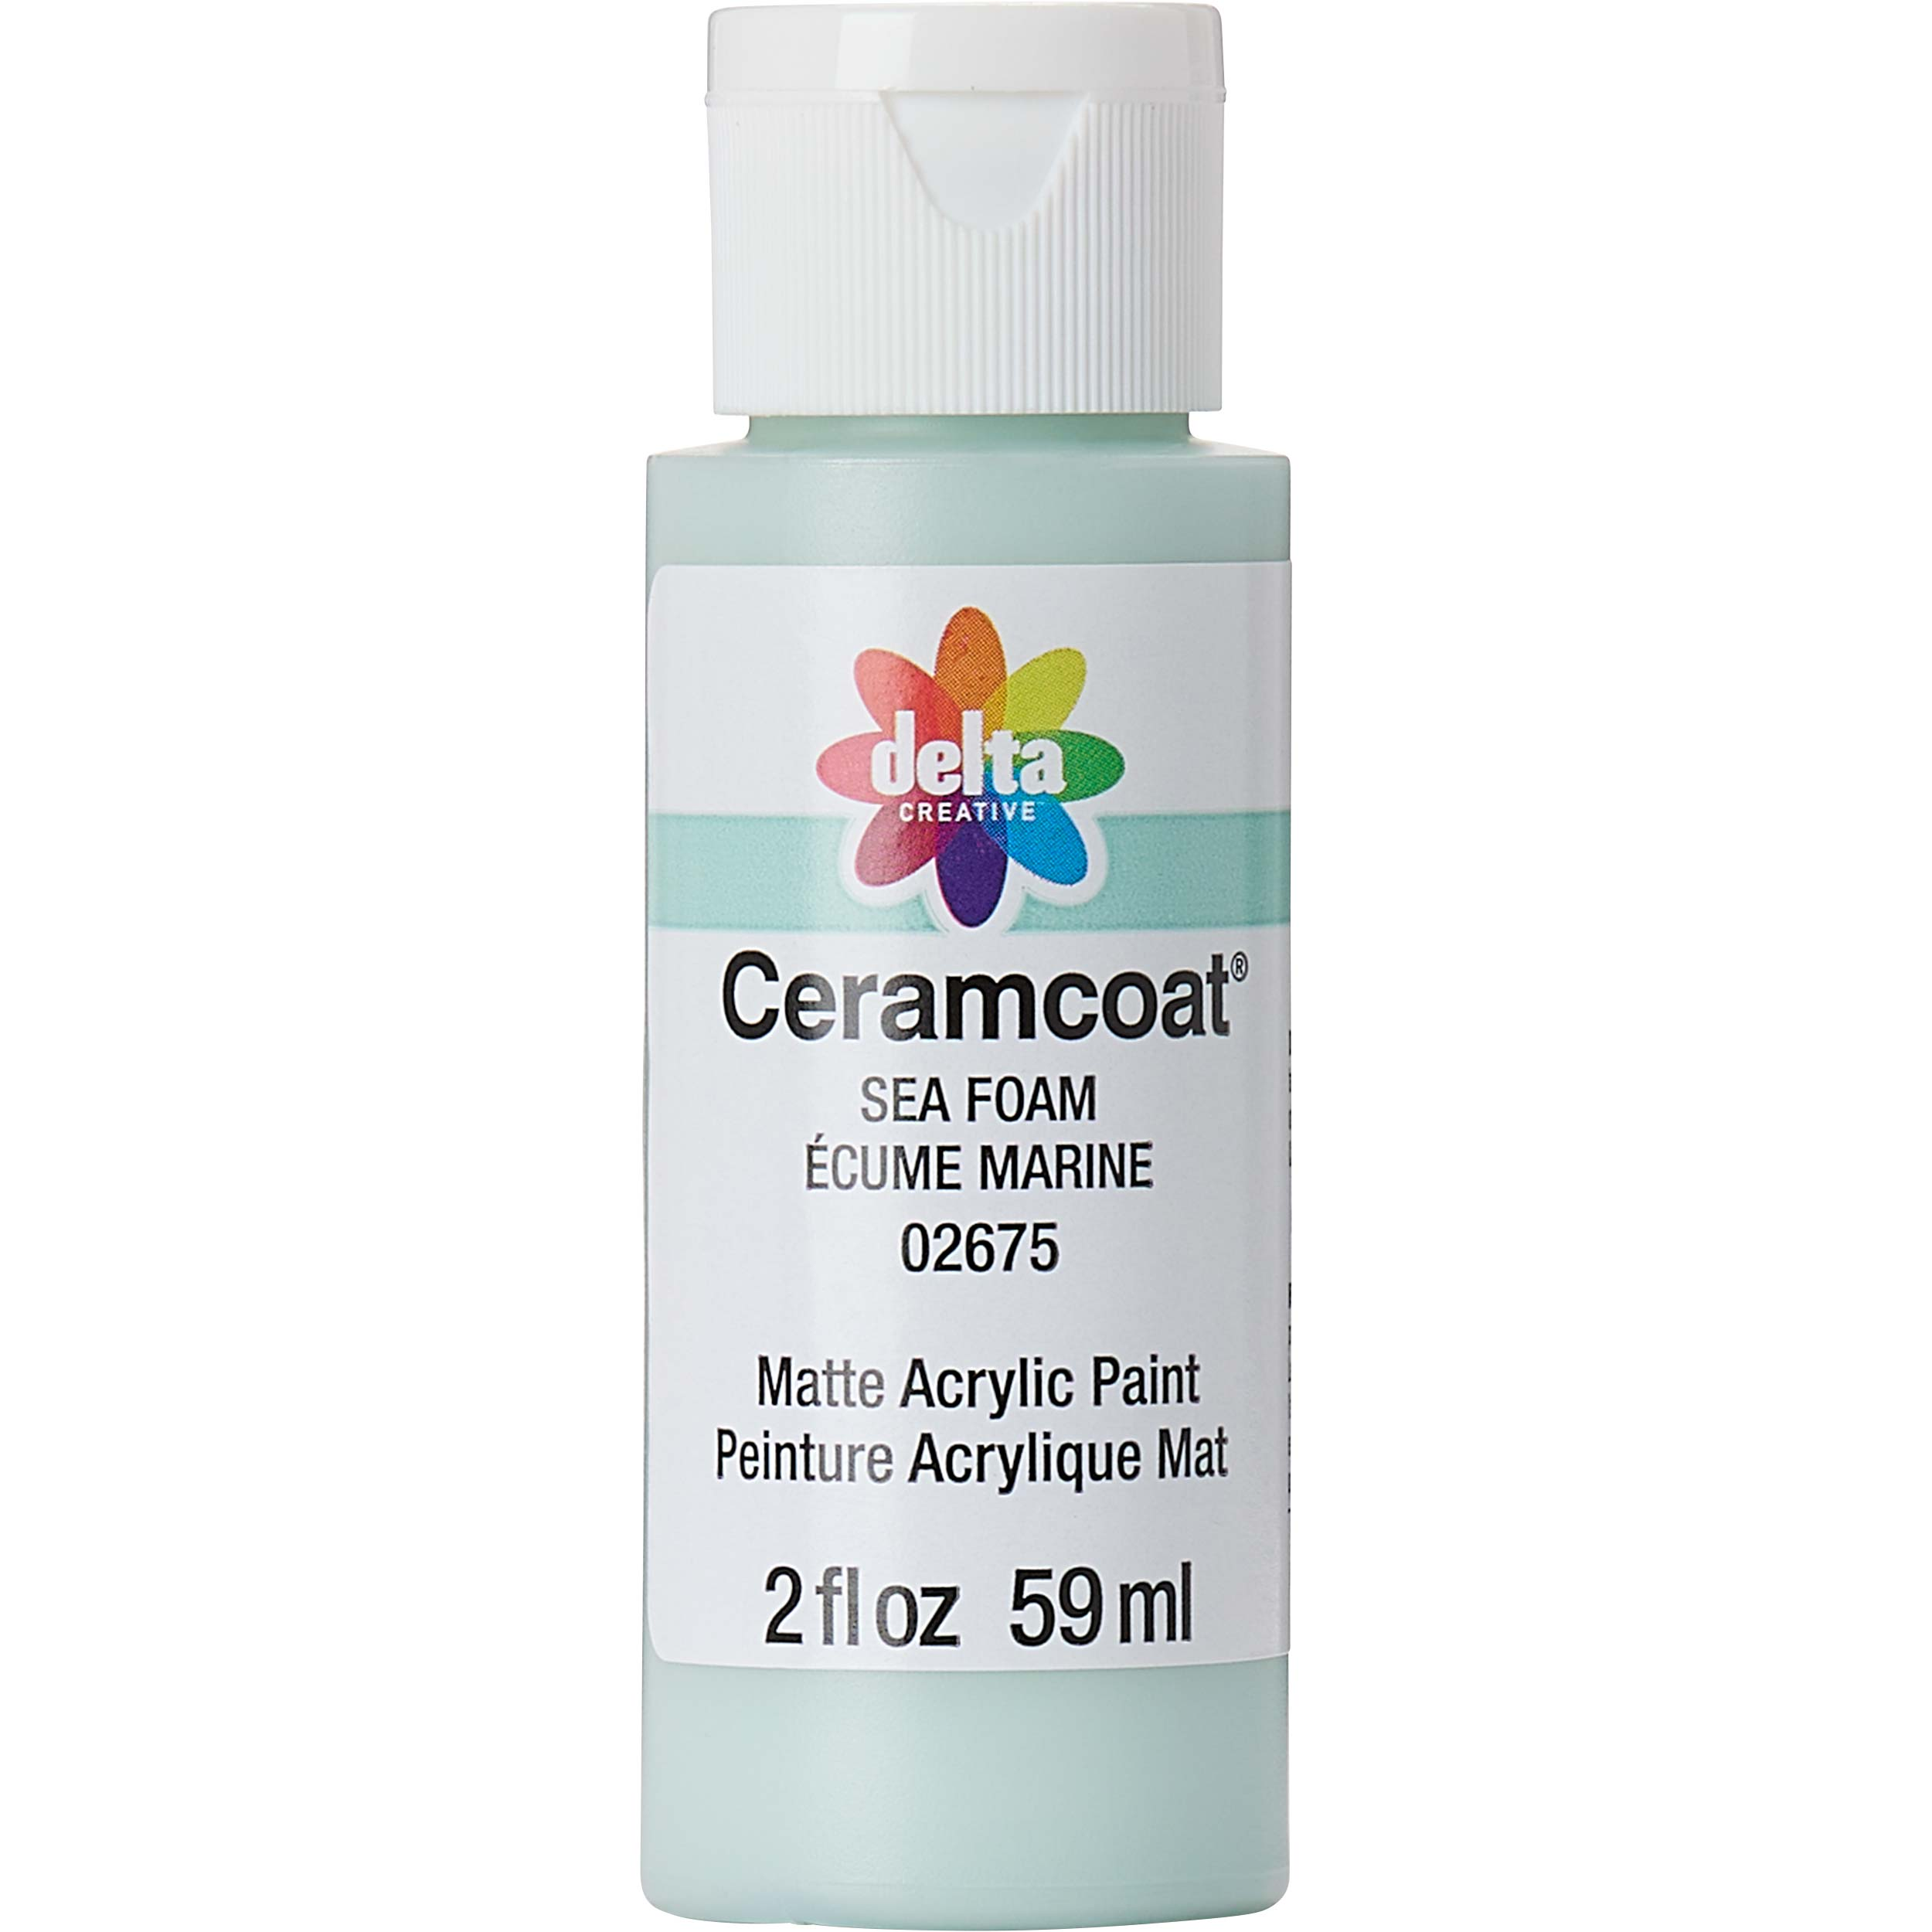 Delta Ceramcoat ® Acrylic Paint - Sea Foam, 2 oz. - 026750202W